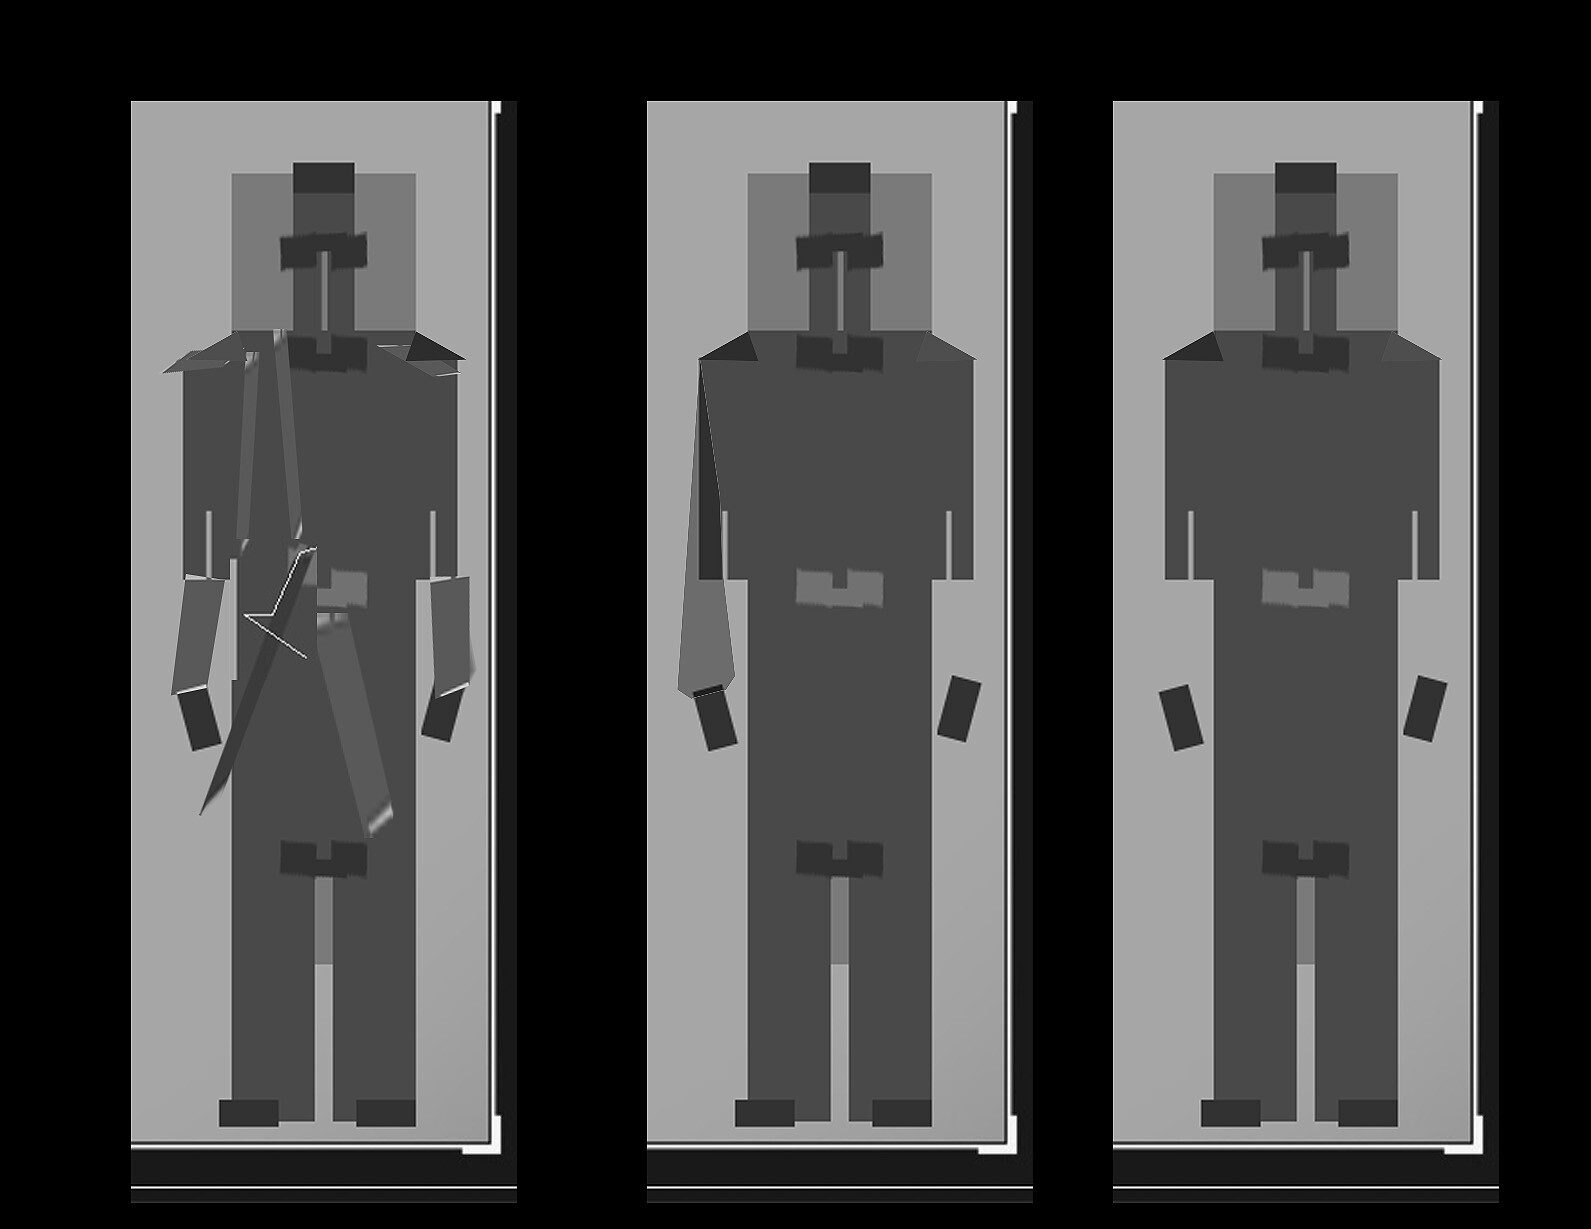 CHARACTER TEMPLATE.